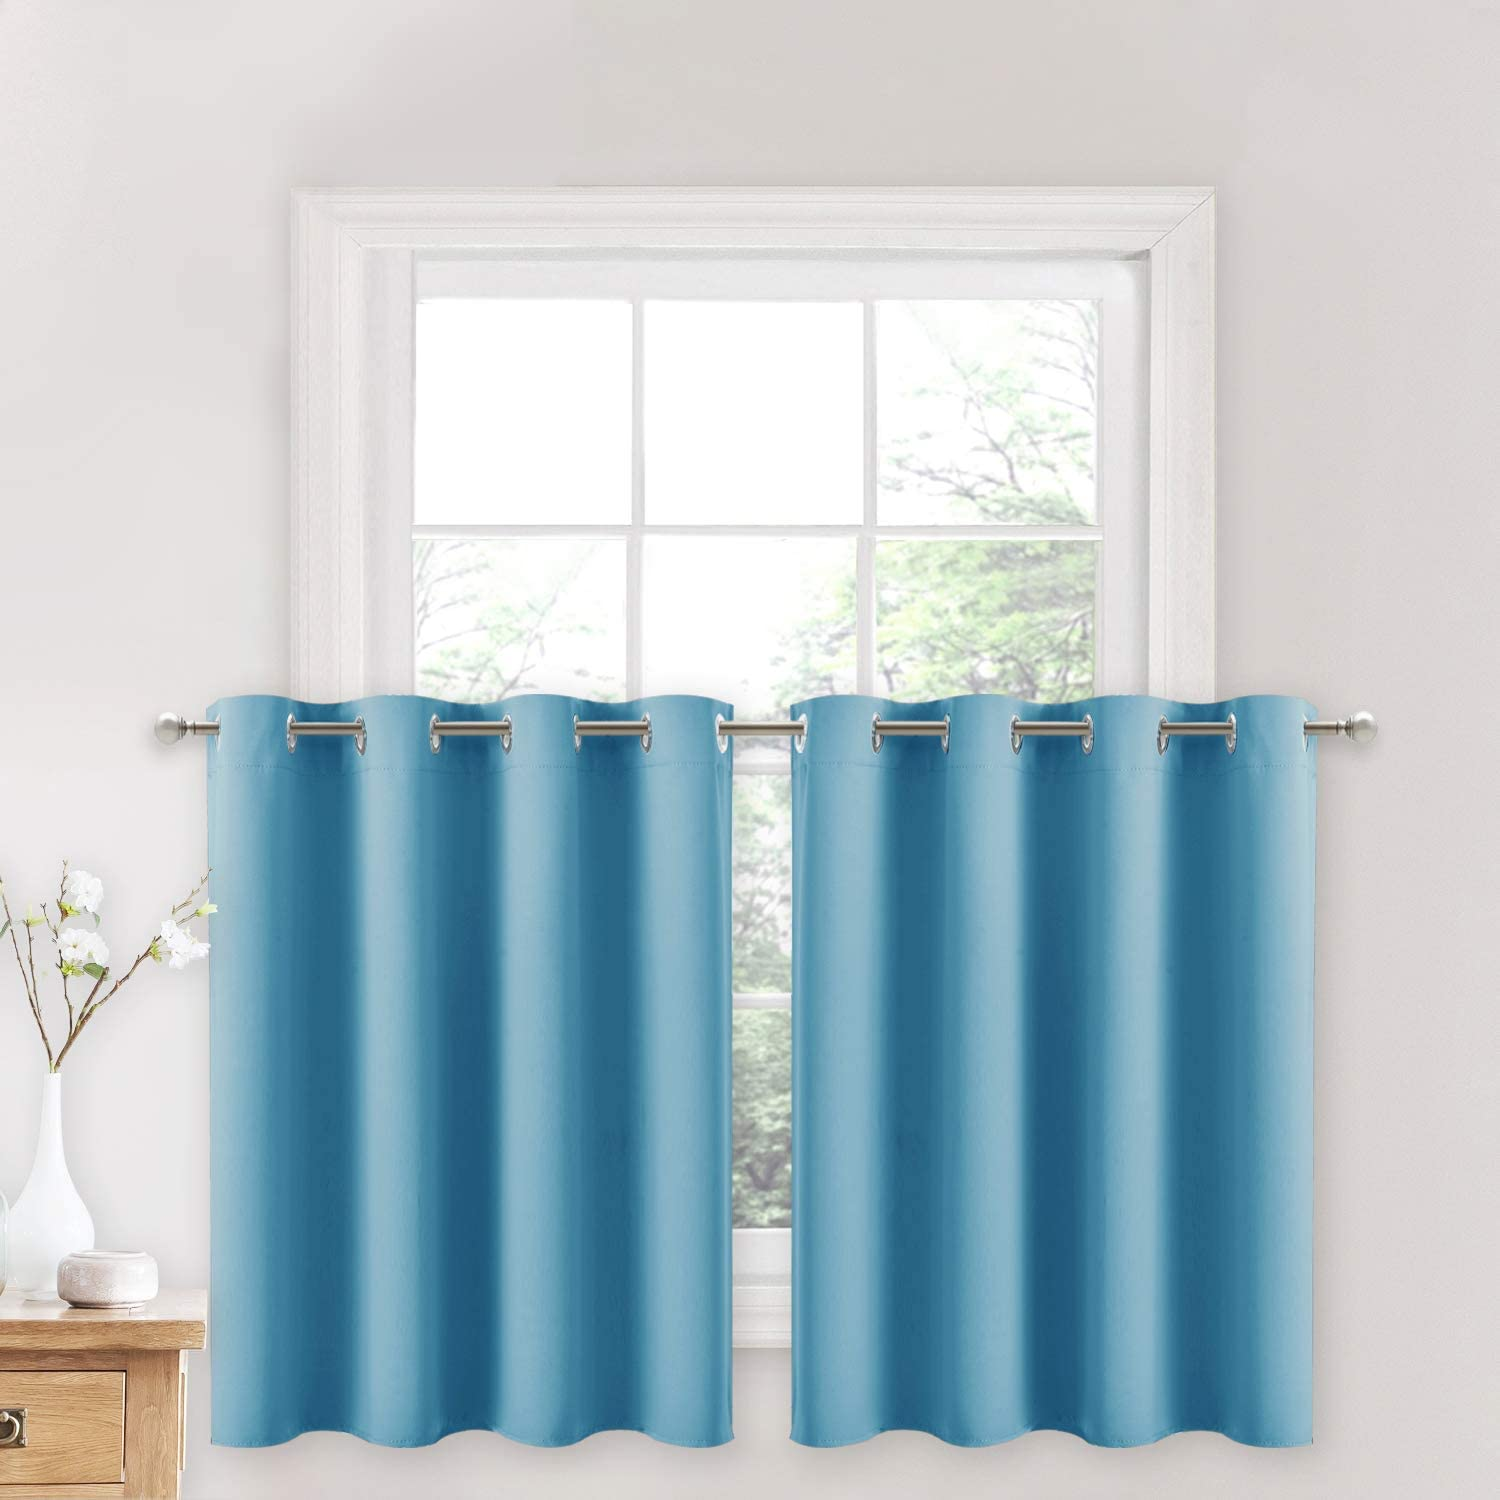 NICETOWN Blackout Window Curtains for Nursery - Eyelet Top Window Treatment Blackout Curtain Panels (Teal Blue=Light Blue, 2 PCs, W52 x L36 + 1.2 inches Header)